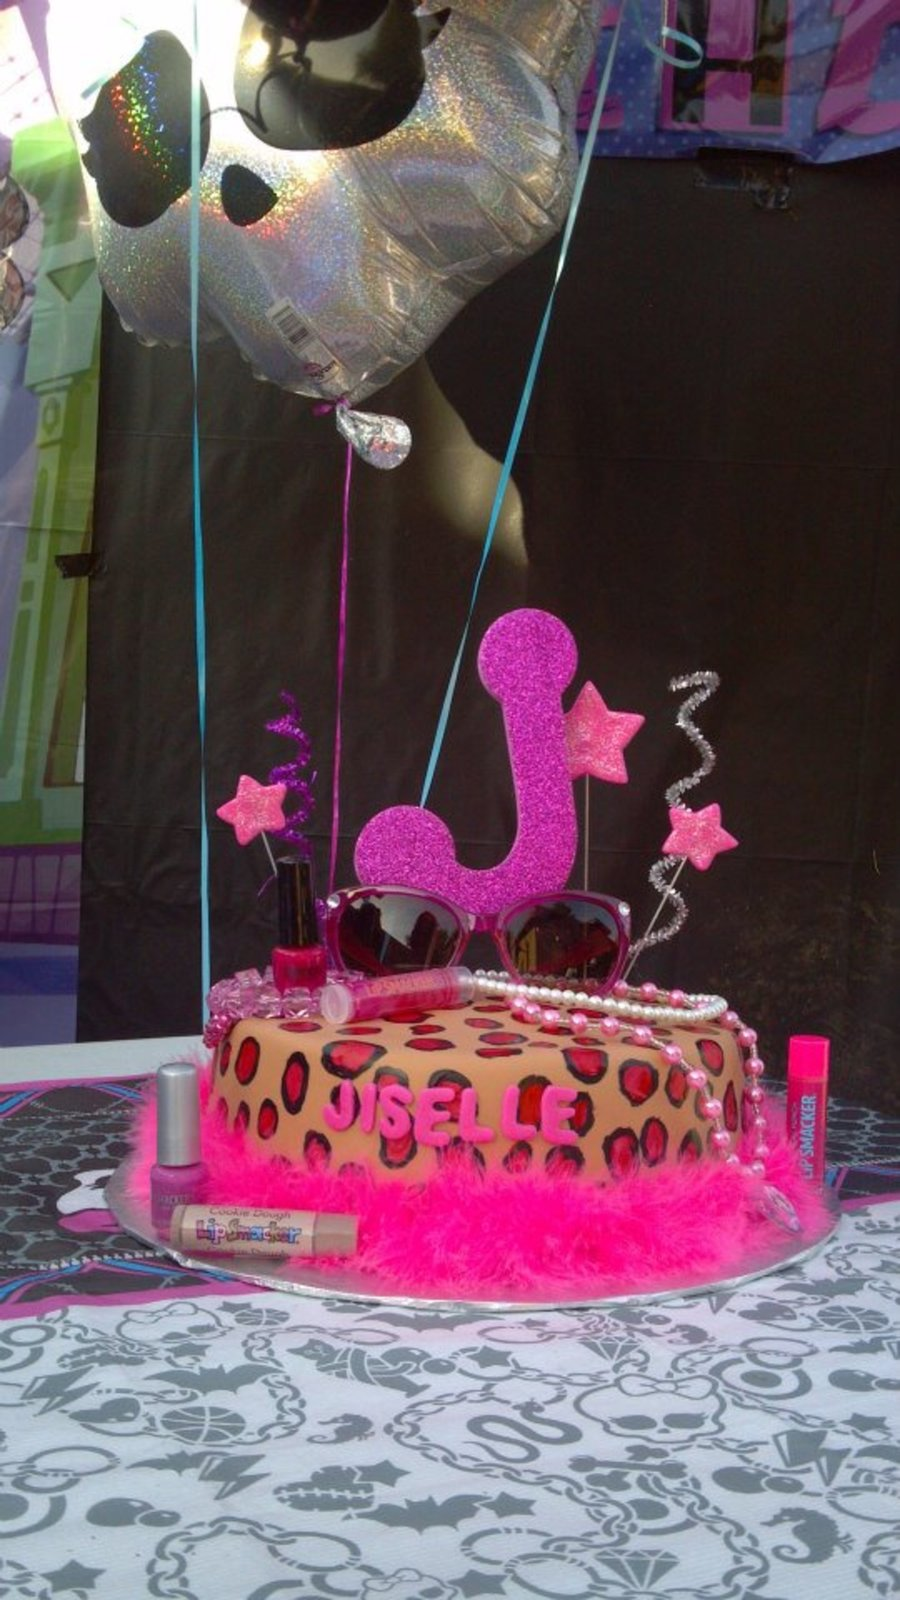 Fashionista Cake on Cake Central